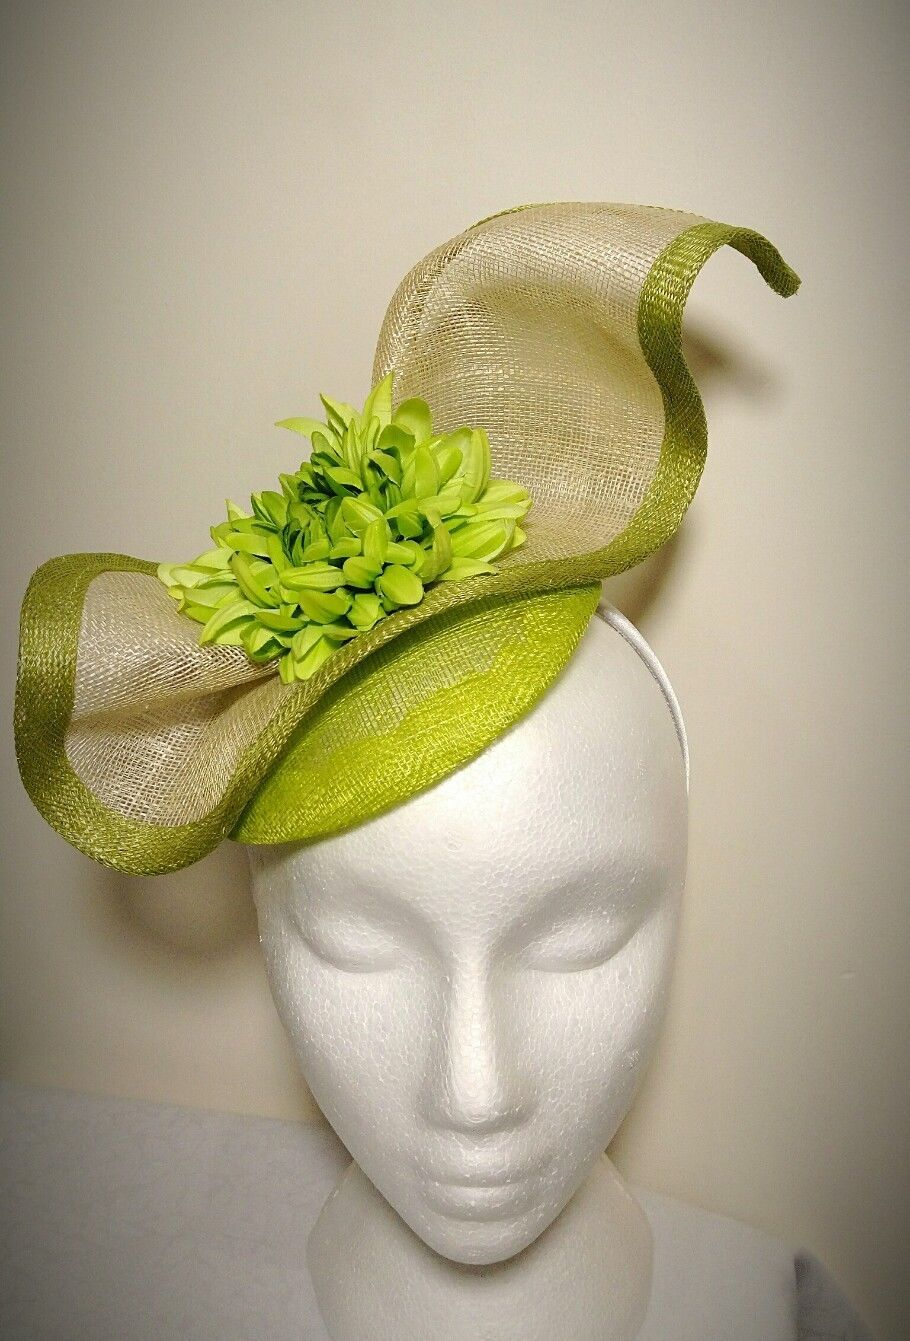 50% OFF!! SALE! REDUCED!! Light Green   White Fascinator Hat ... 70d59a1bc70